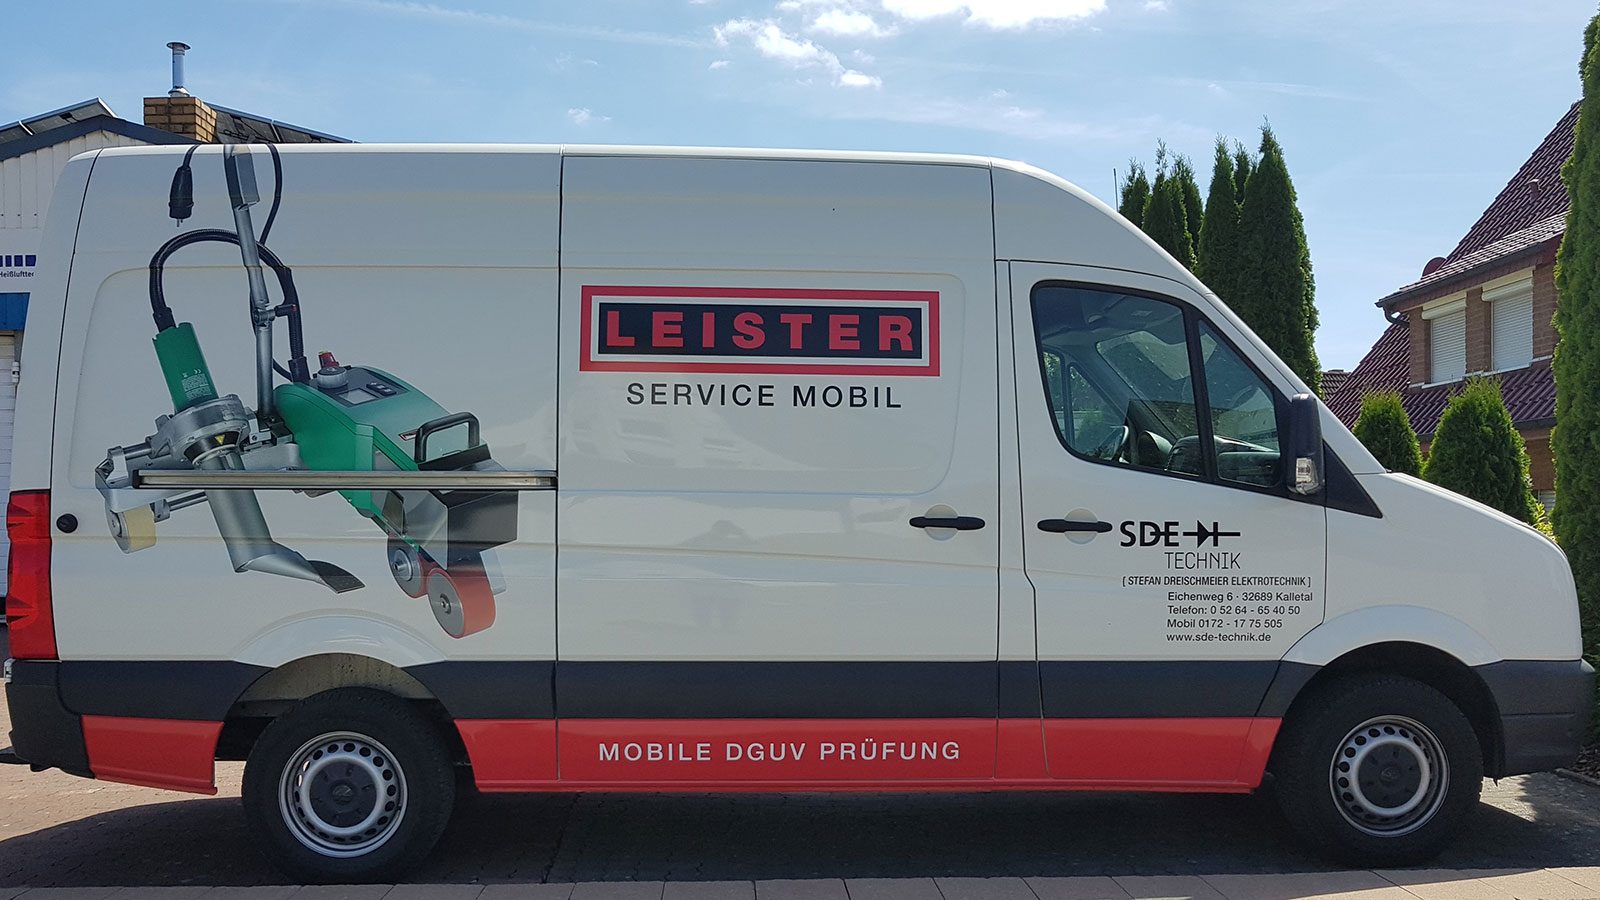 LEISTER Service Bus